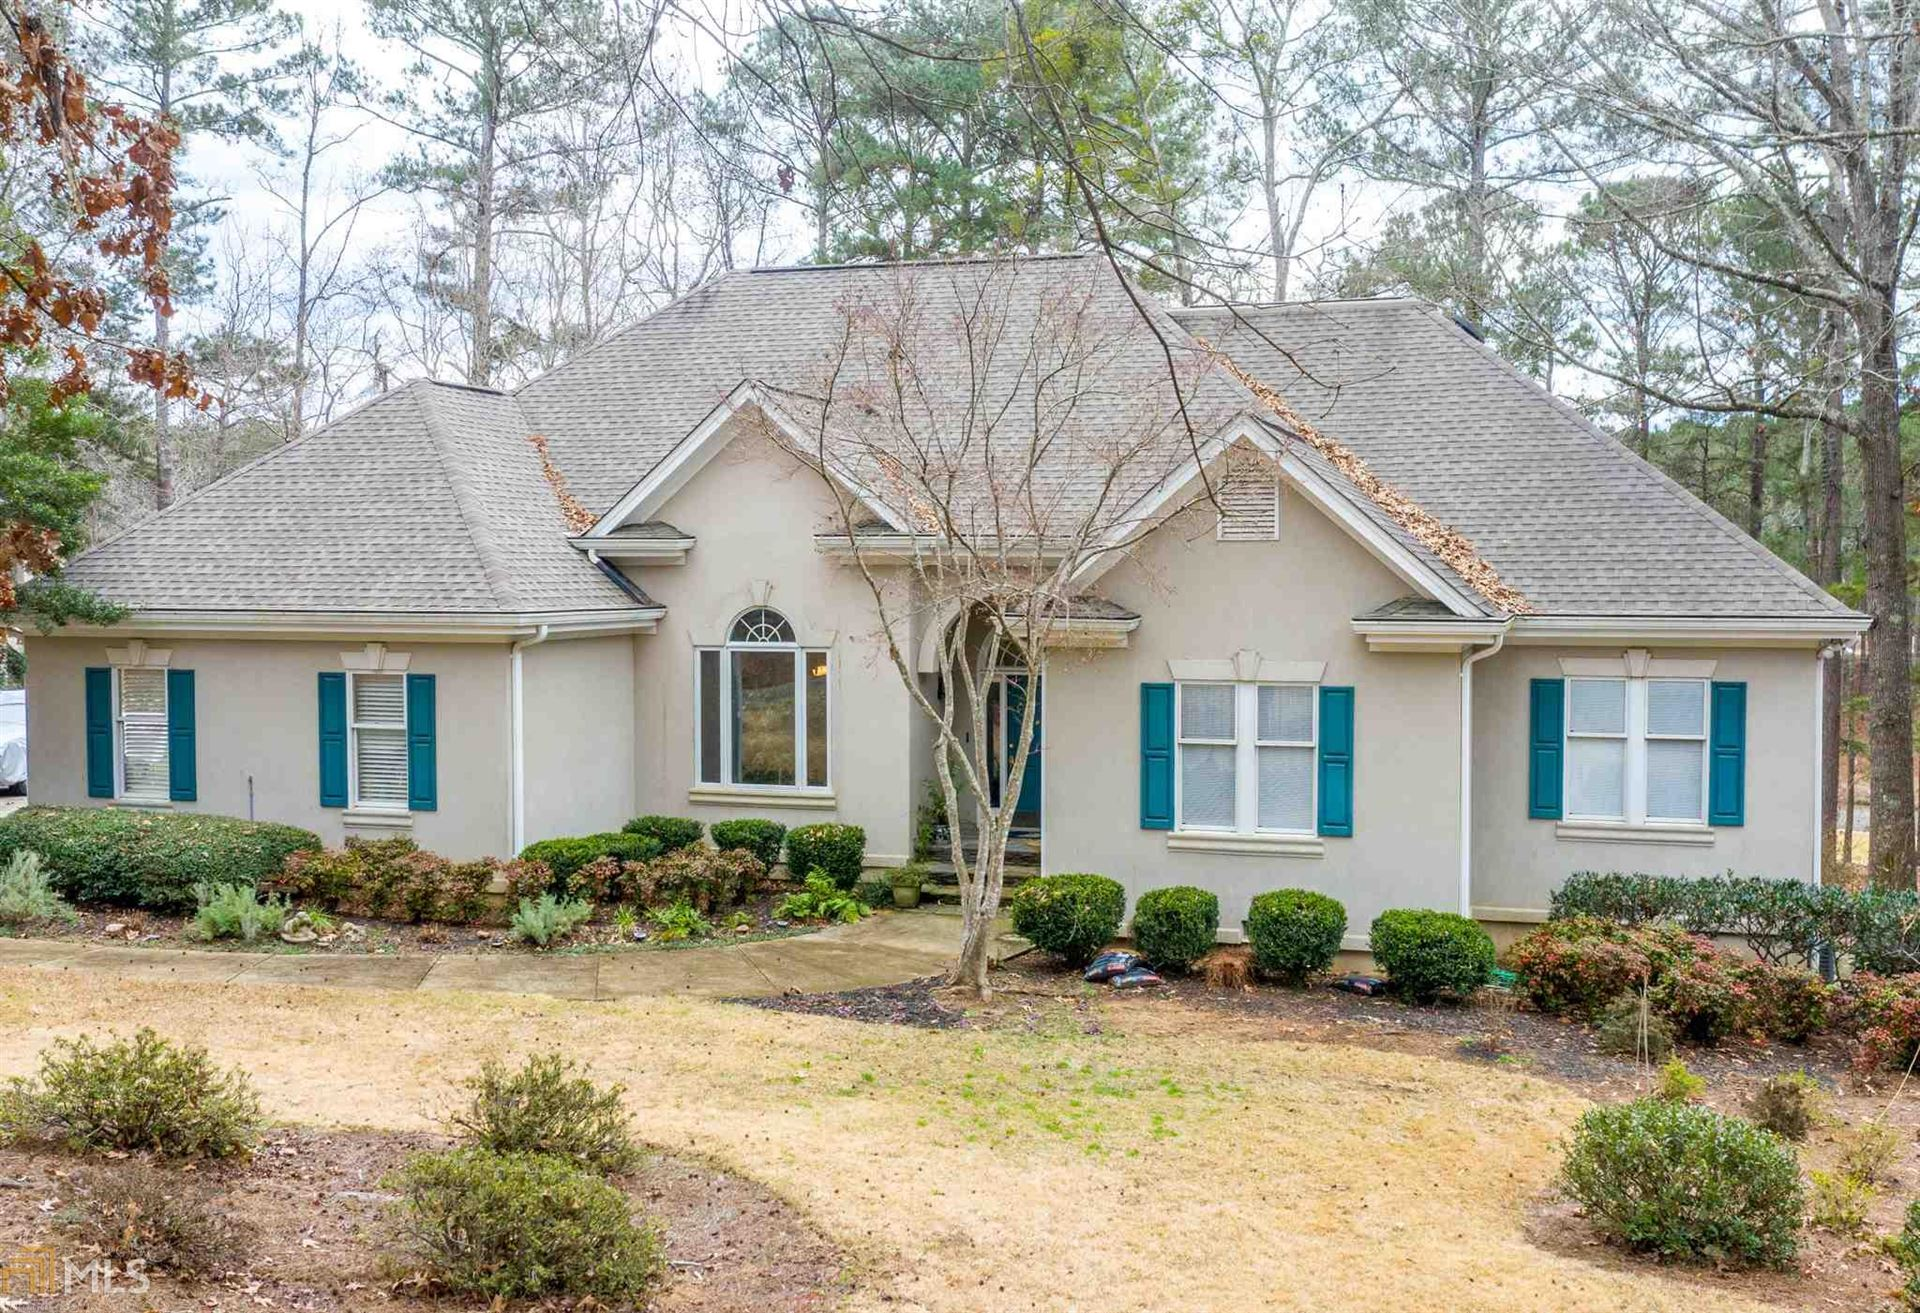 1231 Lakeview Ct, Greensboro, GA 30642 - MLS#: 8919924